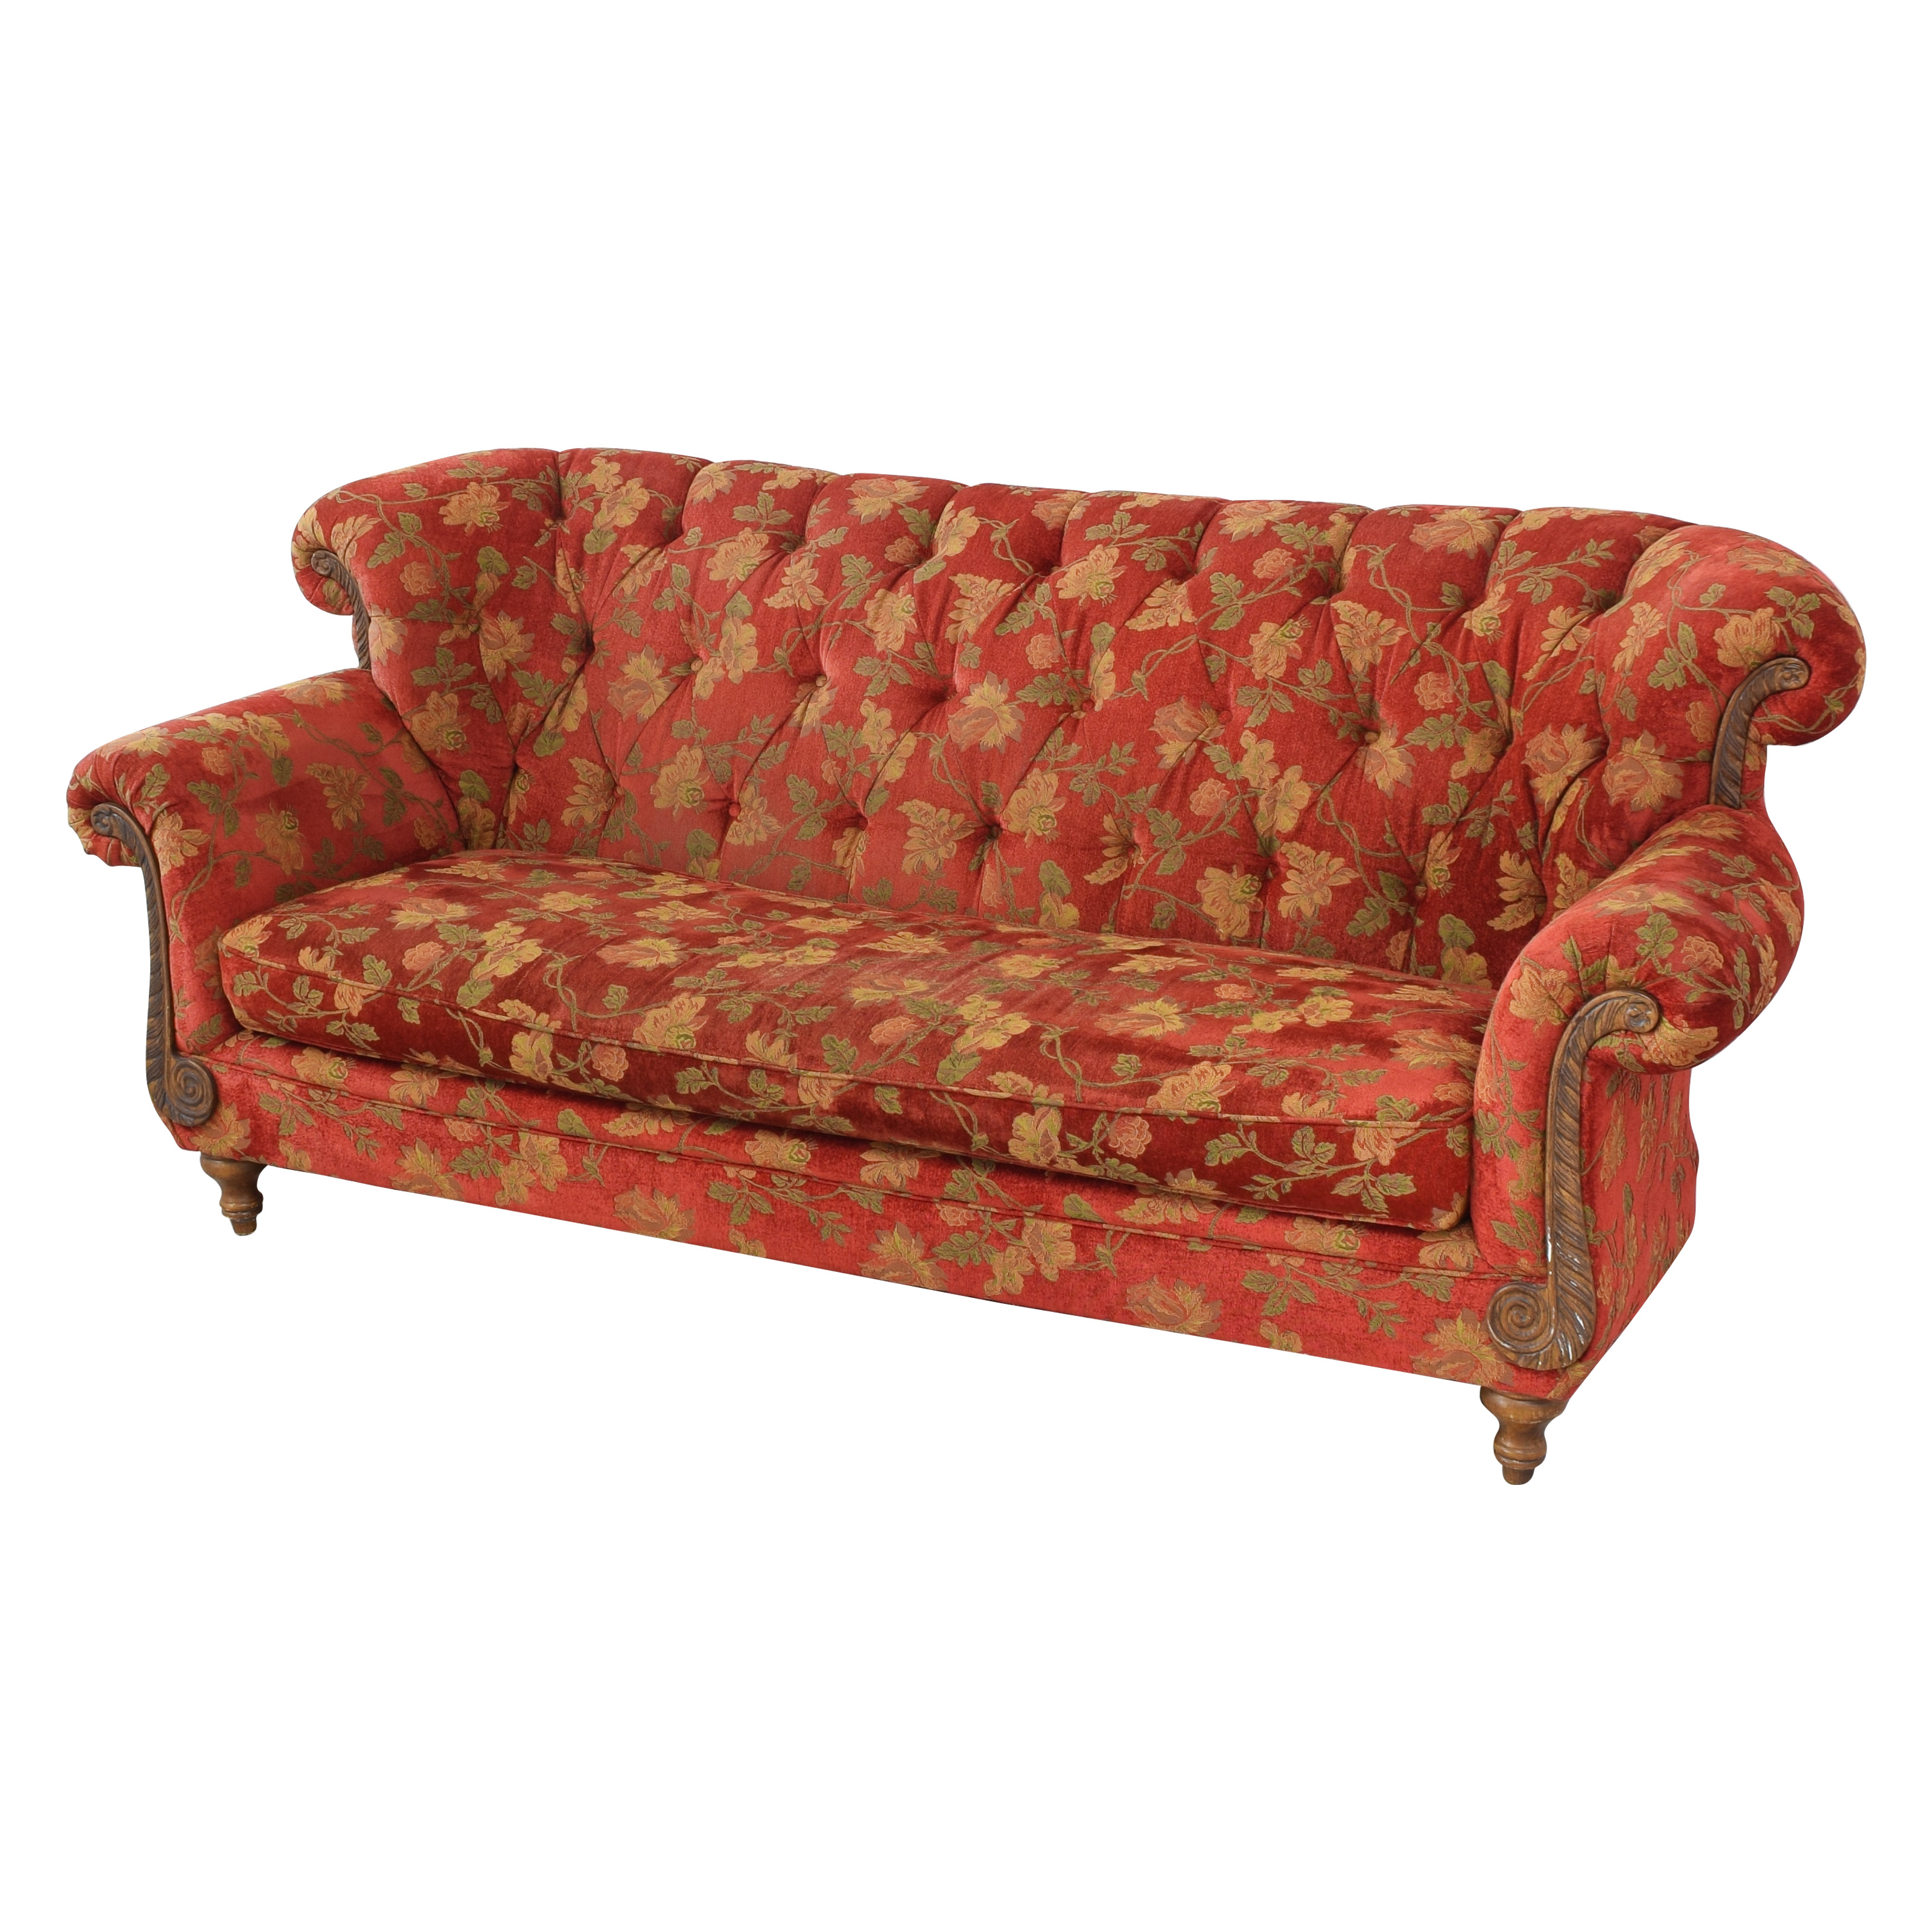 Southern Furniture of Conover Southern Furniture Calcutta Sofa second hand